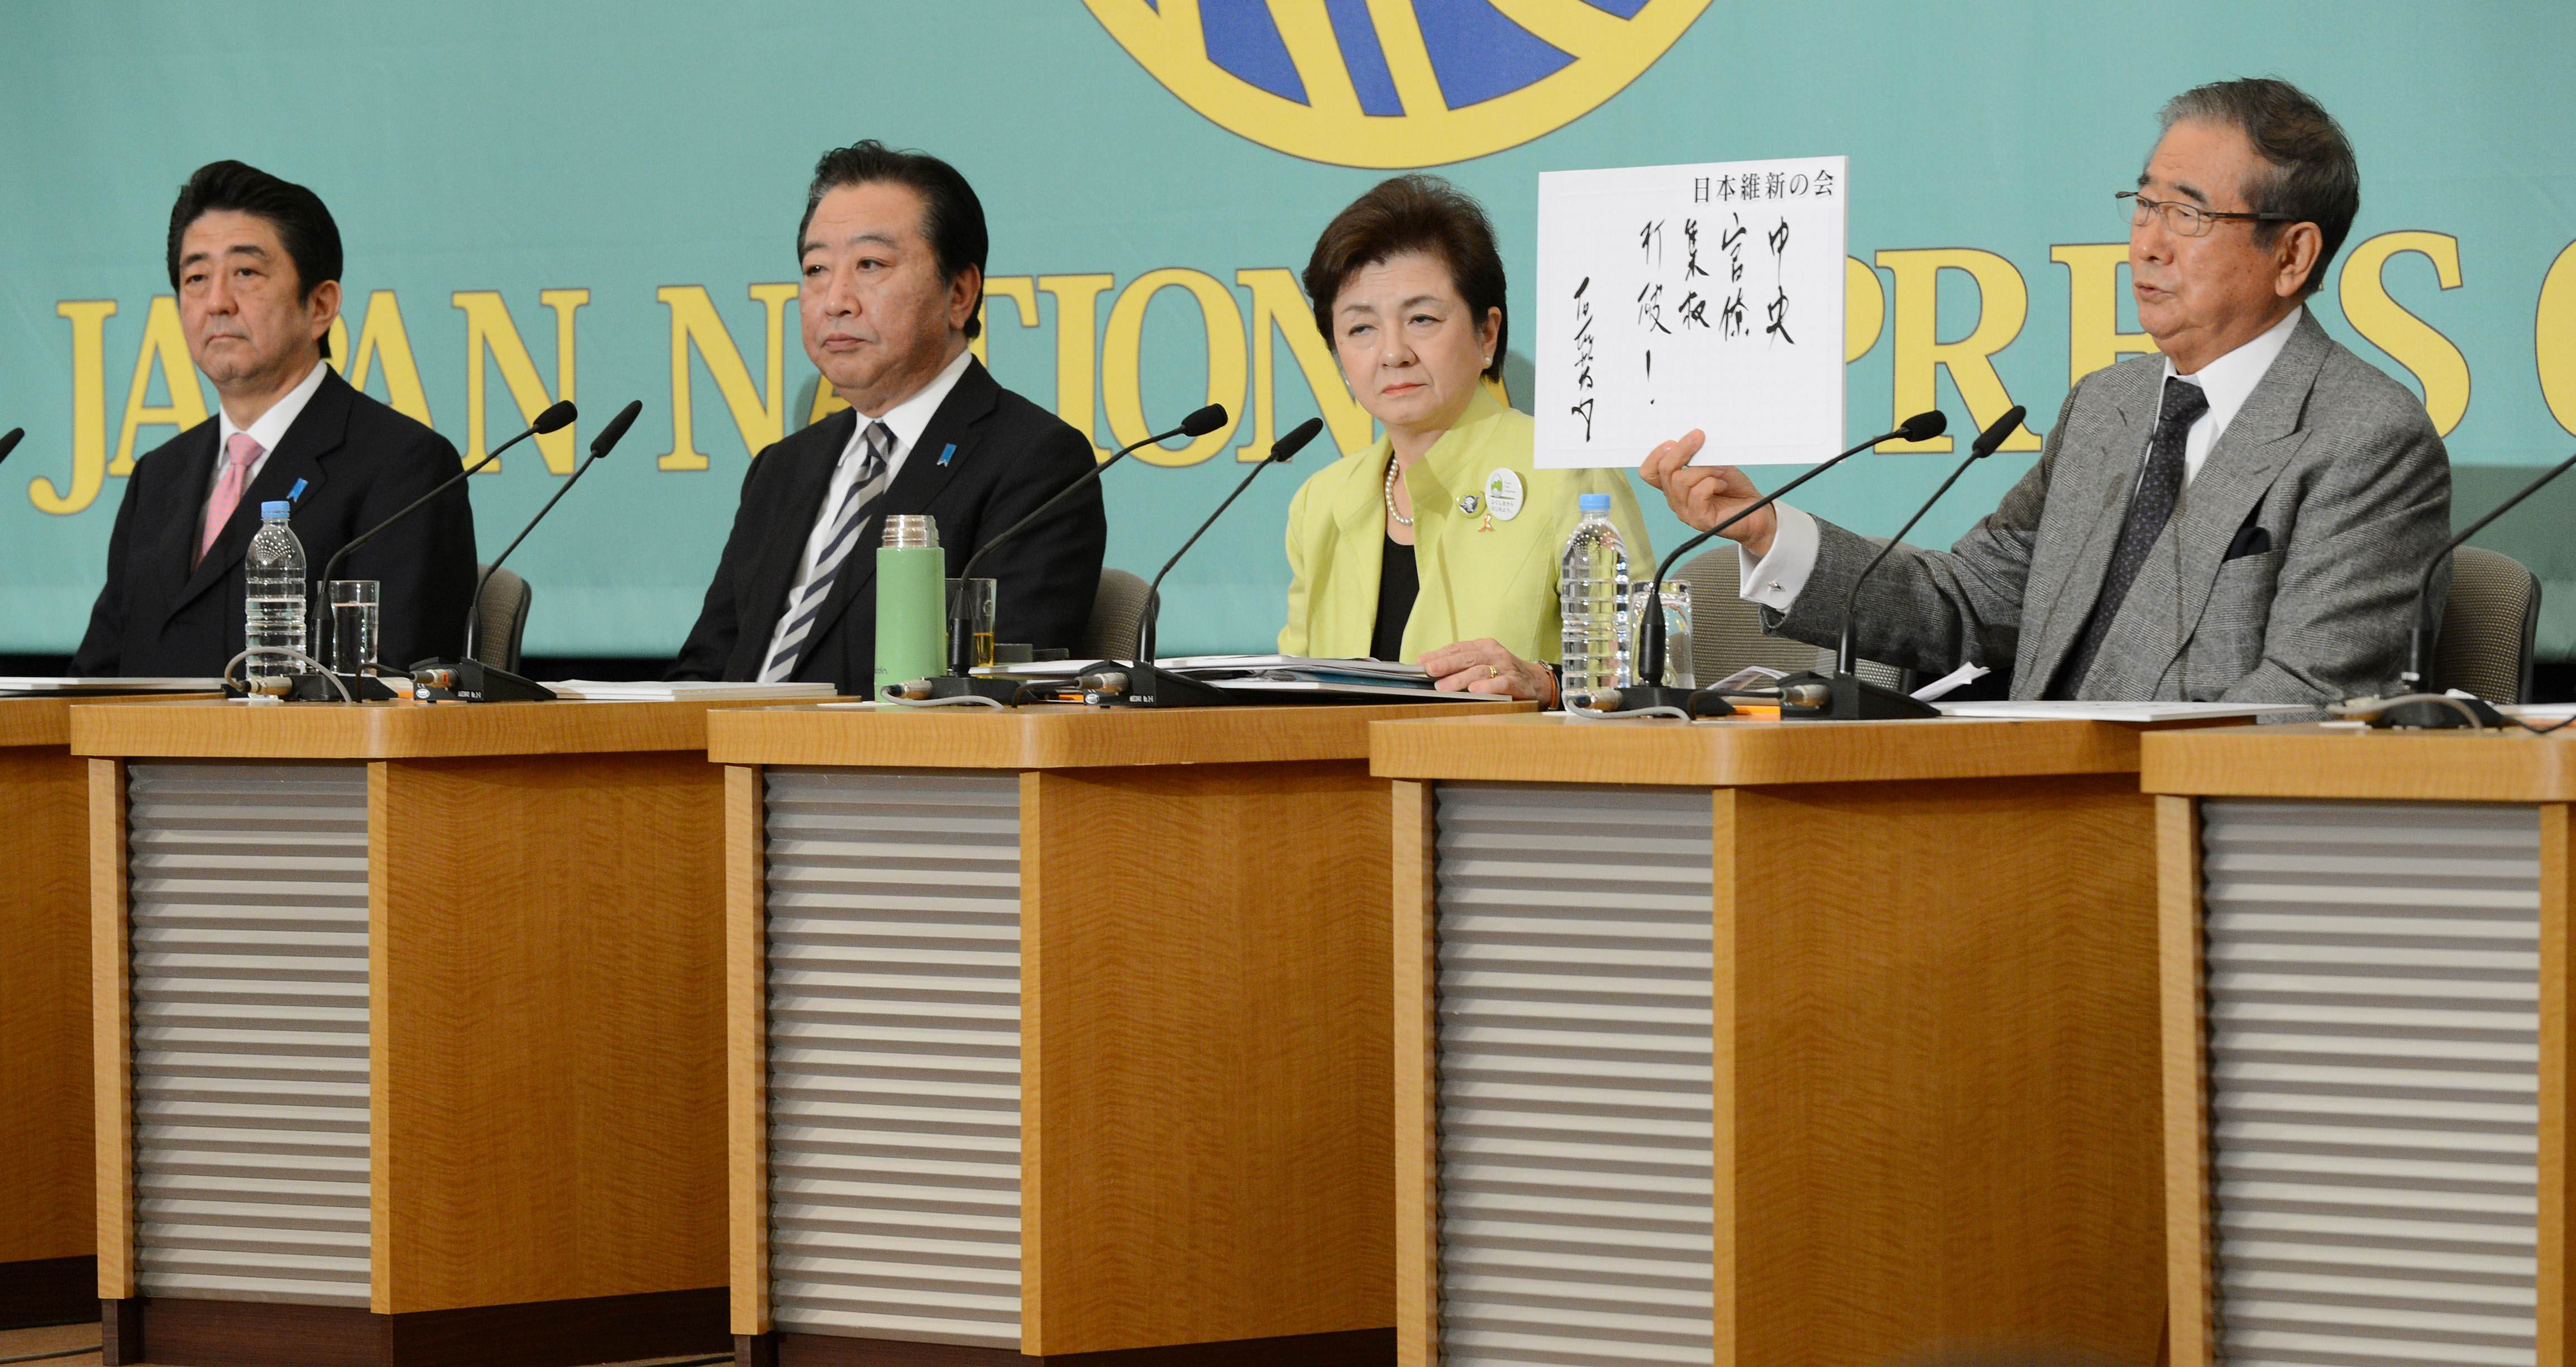 The best-kept secret in Japanese politics is that policies don't matter